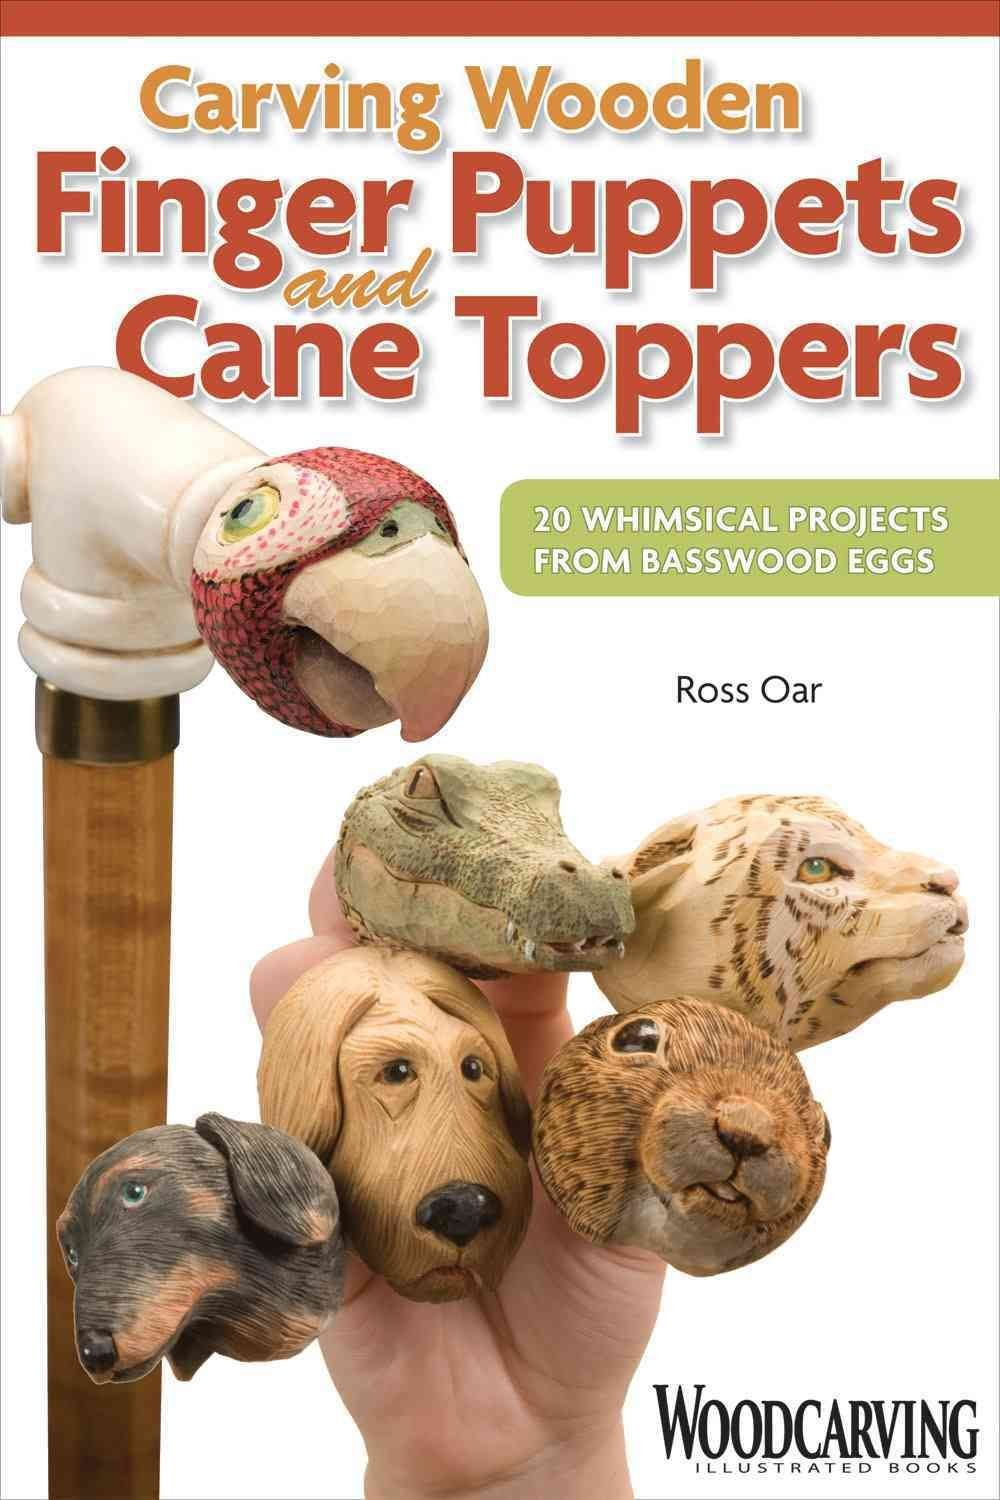 Carving Wooden Finger Puppets and Cane Toppers - Ross Oar